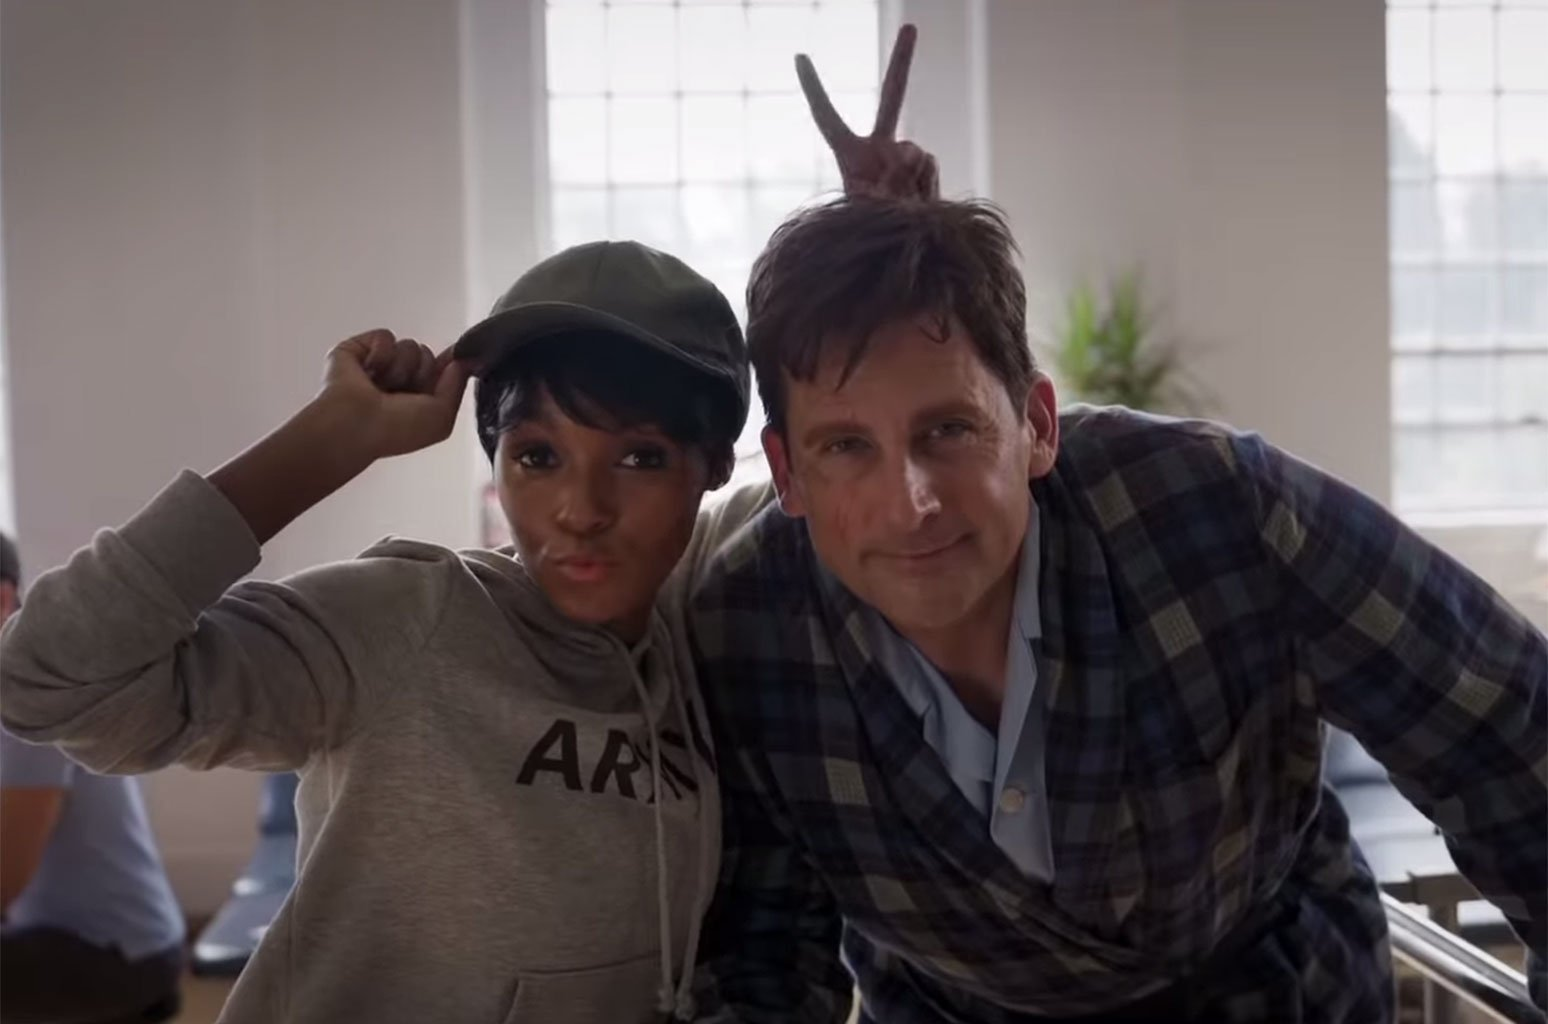 Steve Carell & Janelle Monae appear in the trailer for 'Welcome to Marwen' https://t.co/7MM8GmXeex https://t.co/PJzh5iYr0H